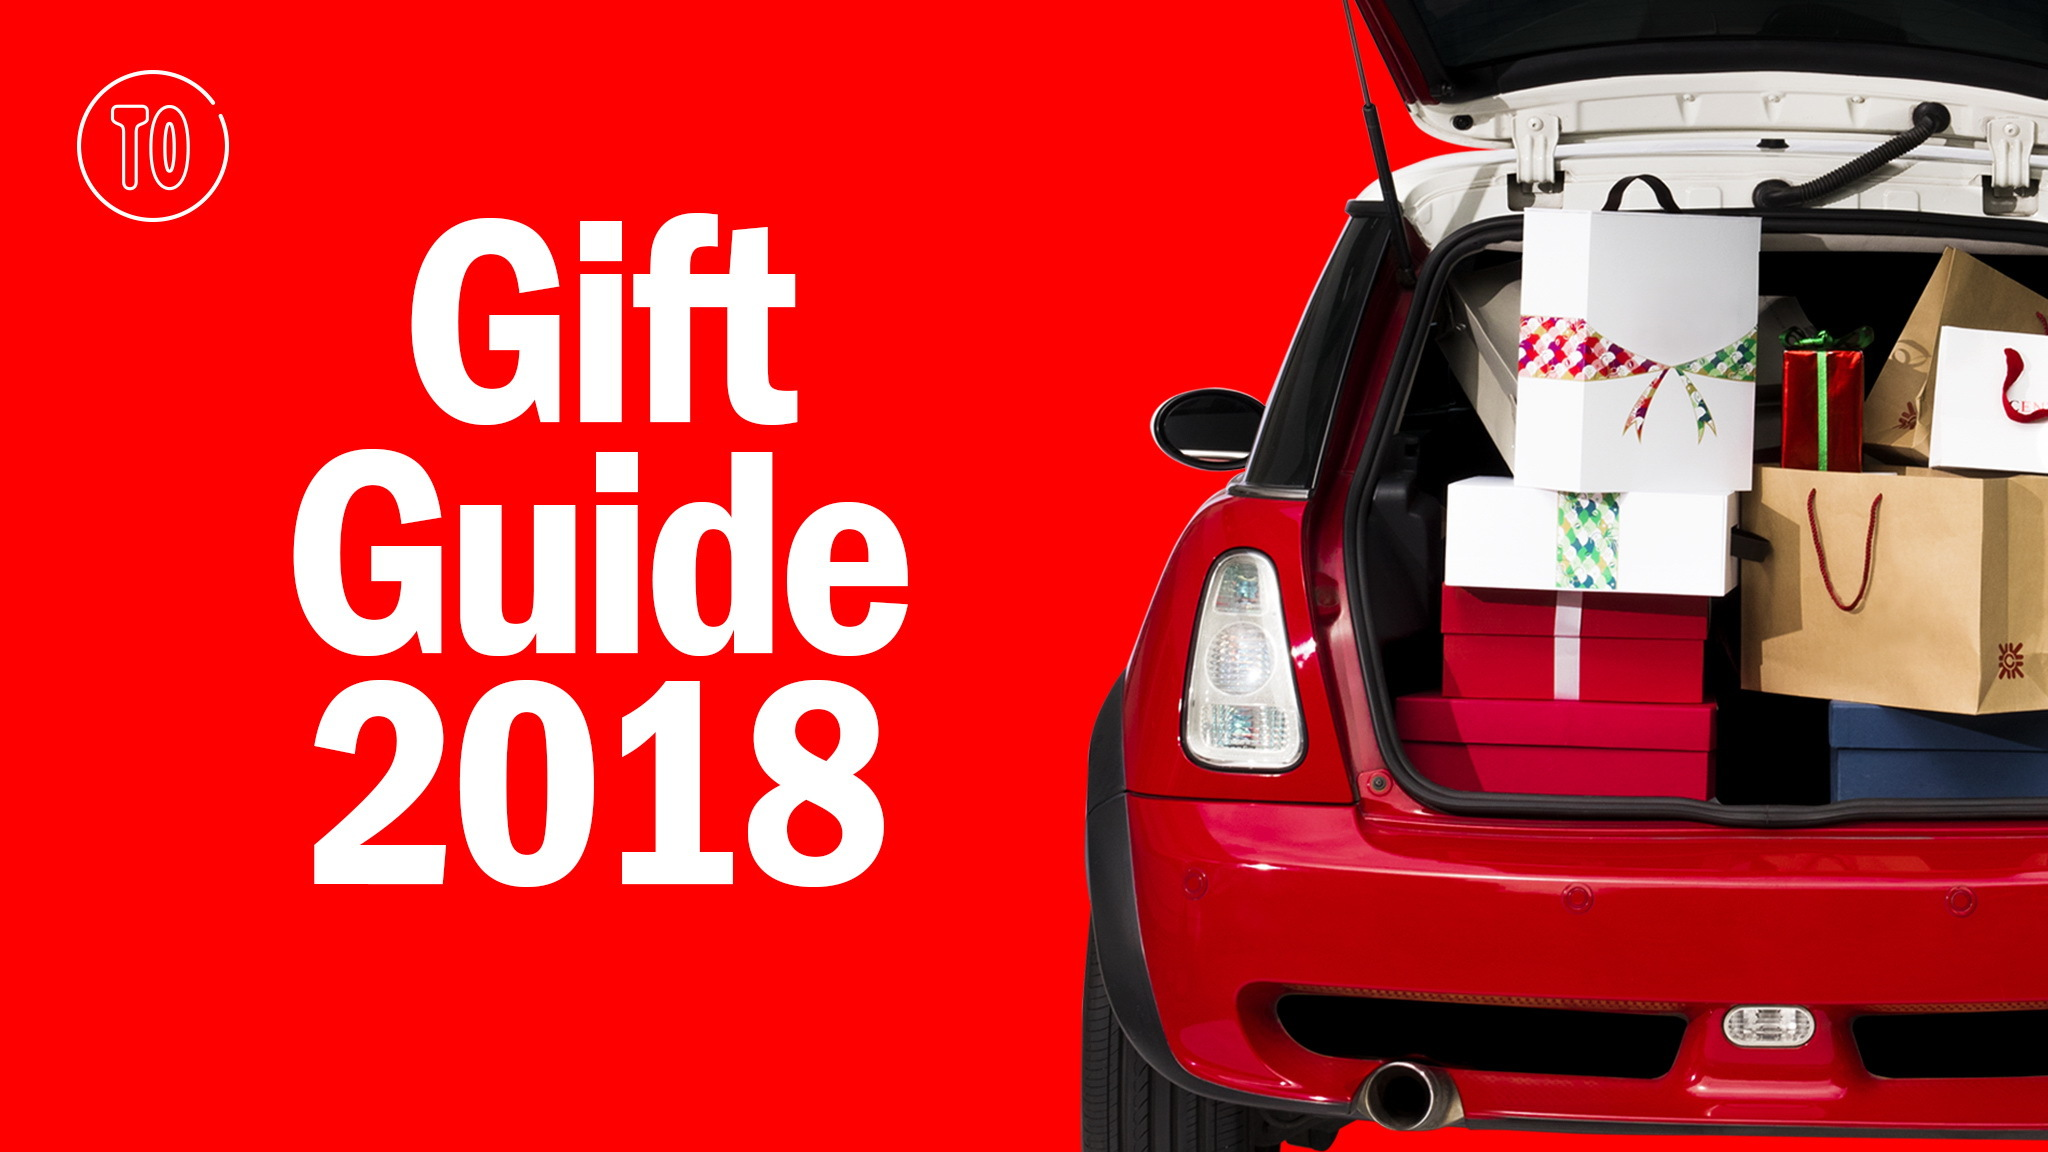 The Time Out gift guide 2018